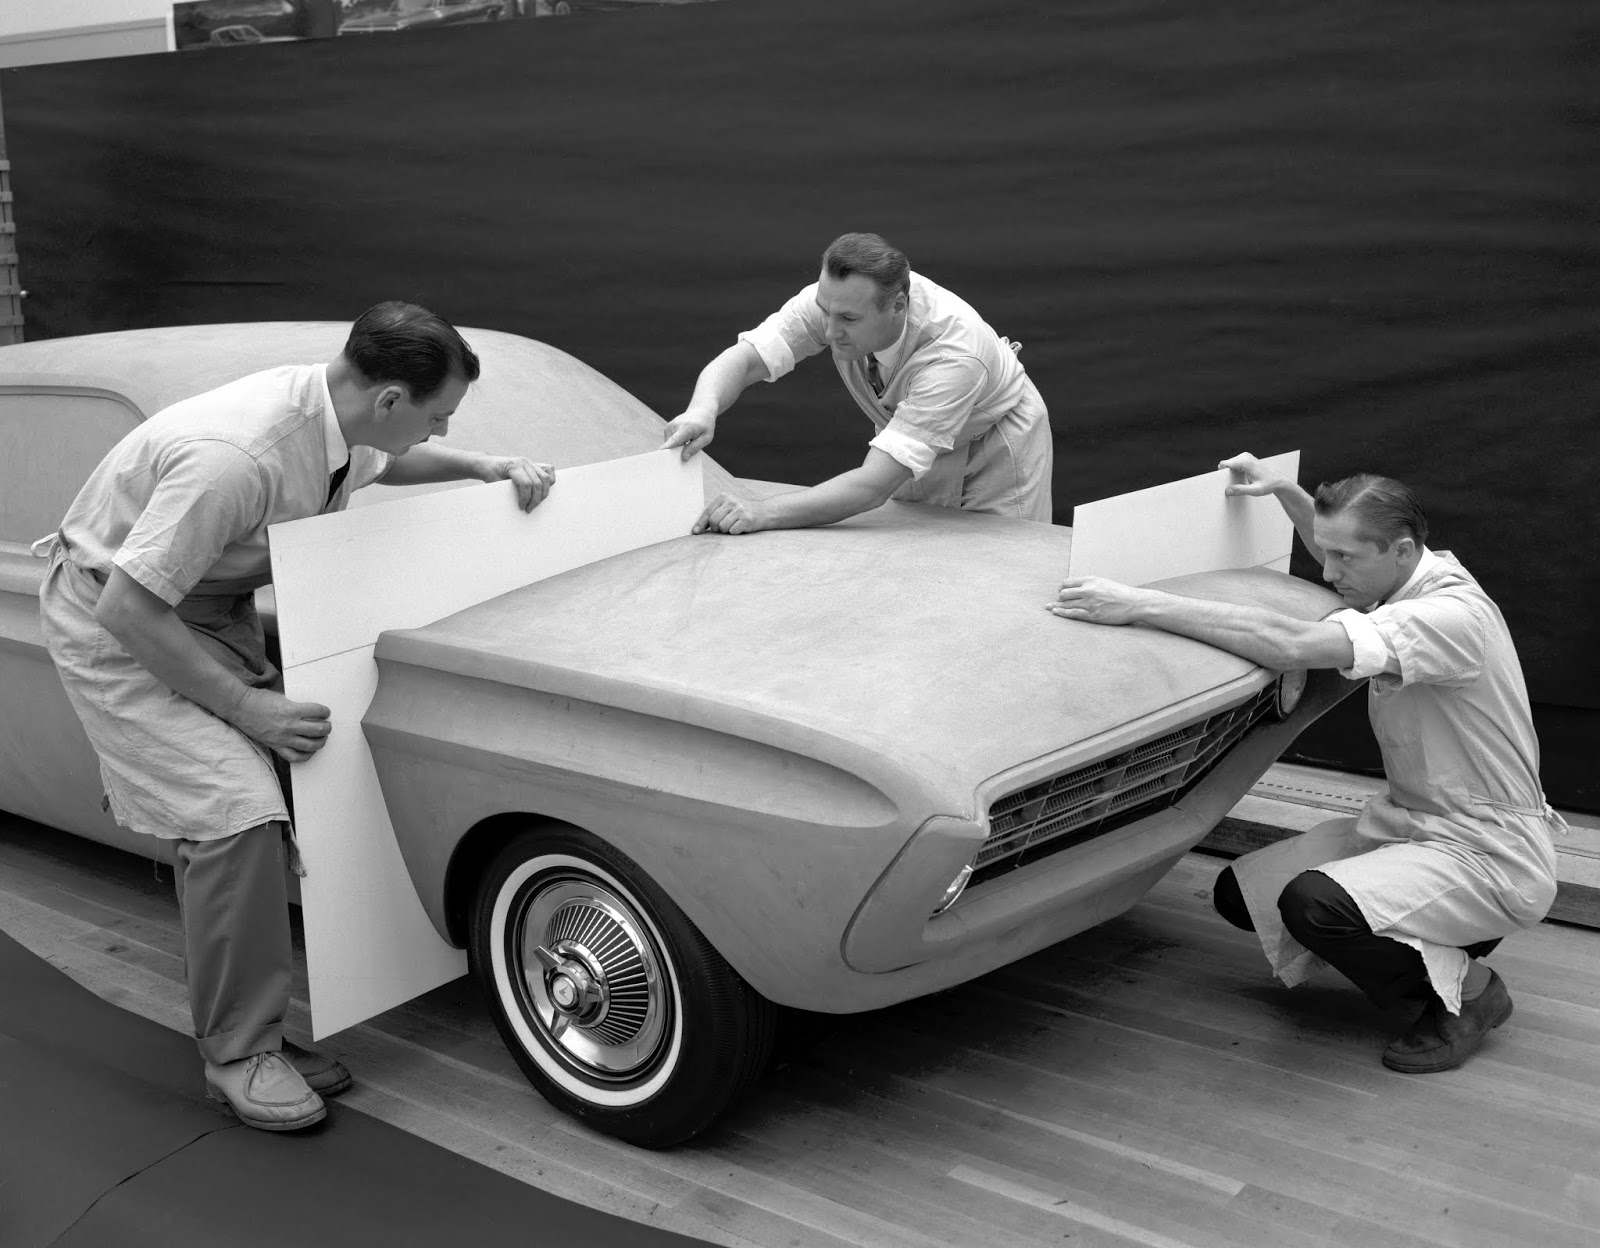 Q1 Special Falcon 1962 Ford Styling Center clay modeling 1 Πώς γιορτάζει η Mustang τα 55 της χρόνια;